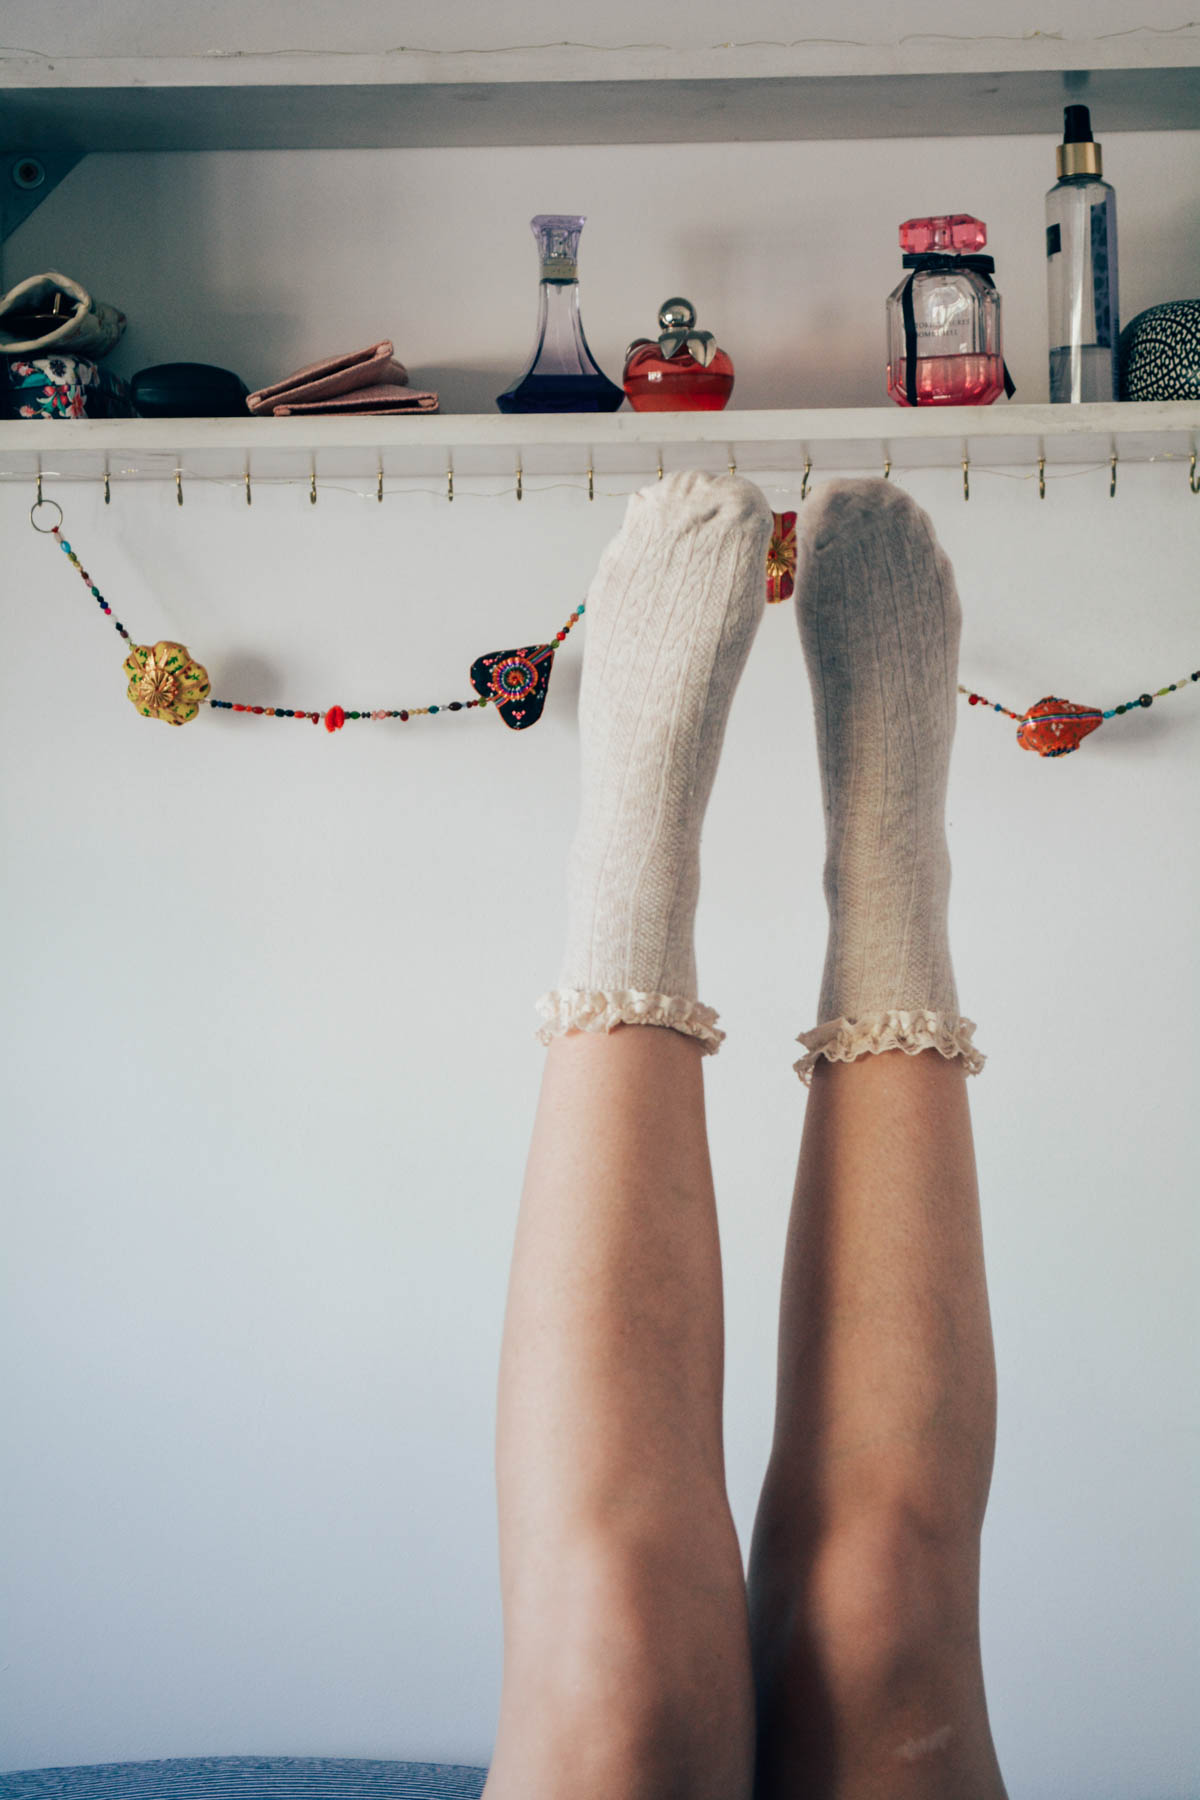 fashion, fashionista, moda, blogger argentina, fashion blogger, fashion blogger argentina, blogger, lifestyle blogger, medias, loca por las medias, coleccion de medias, socks, sock collection, tights, otk socks, over knee socks